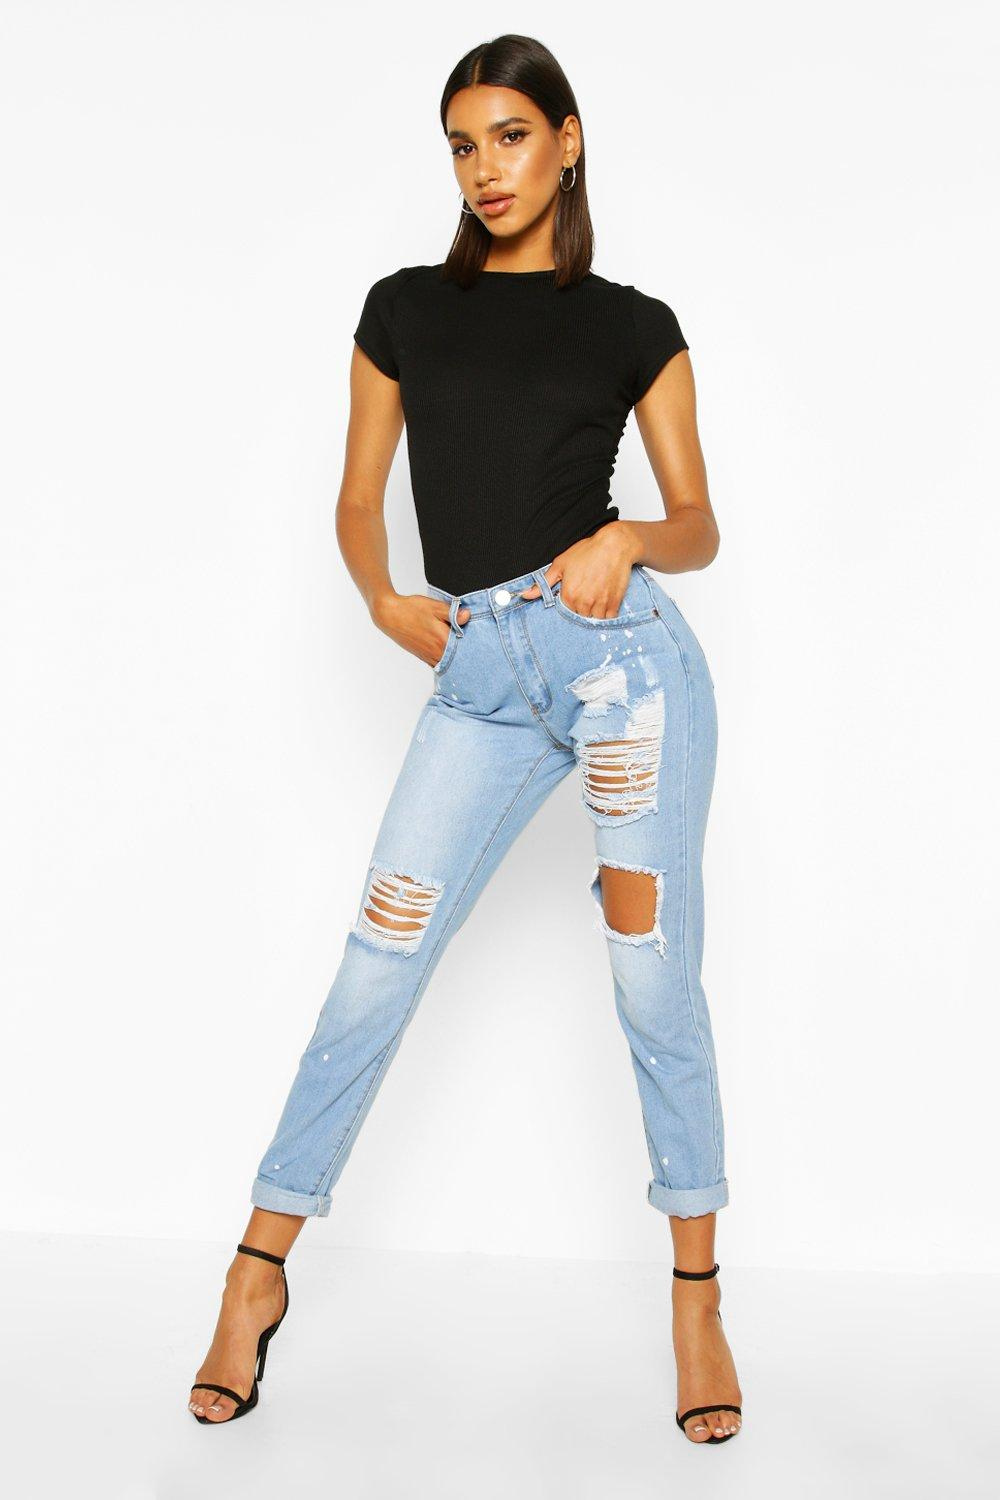 Shop for boyfriend ripped jeans online at Target. Free shipping on purchases over $35 and save 5% every day with your Target REDcard.